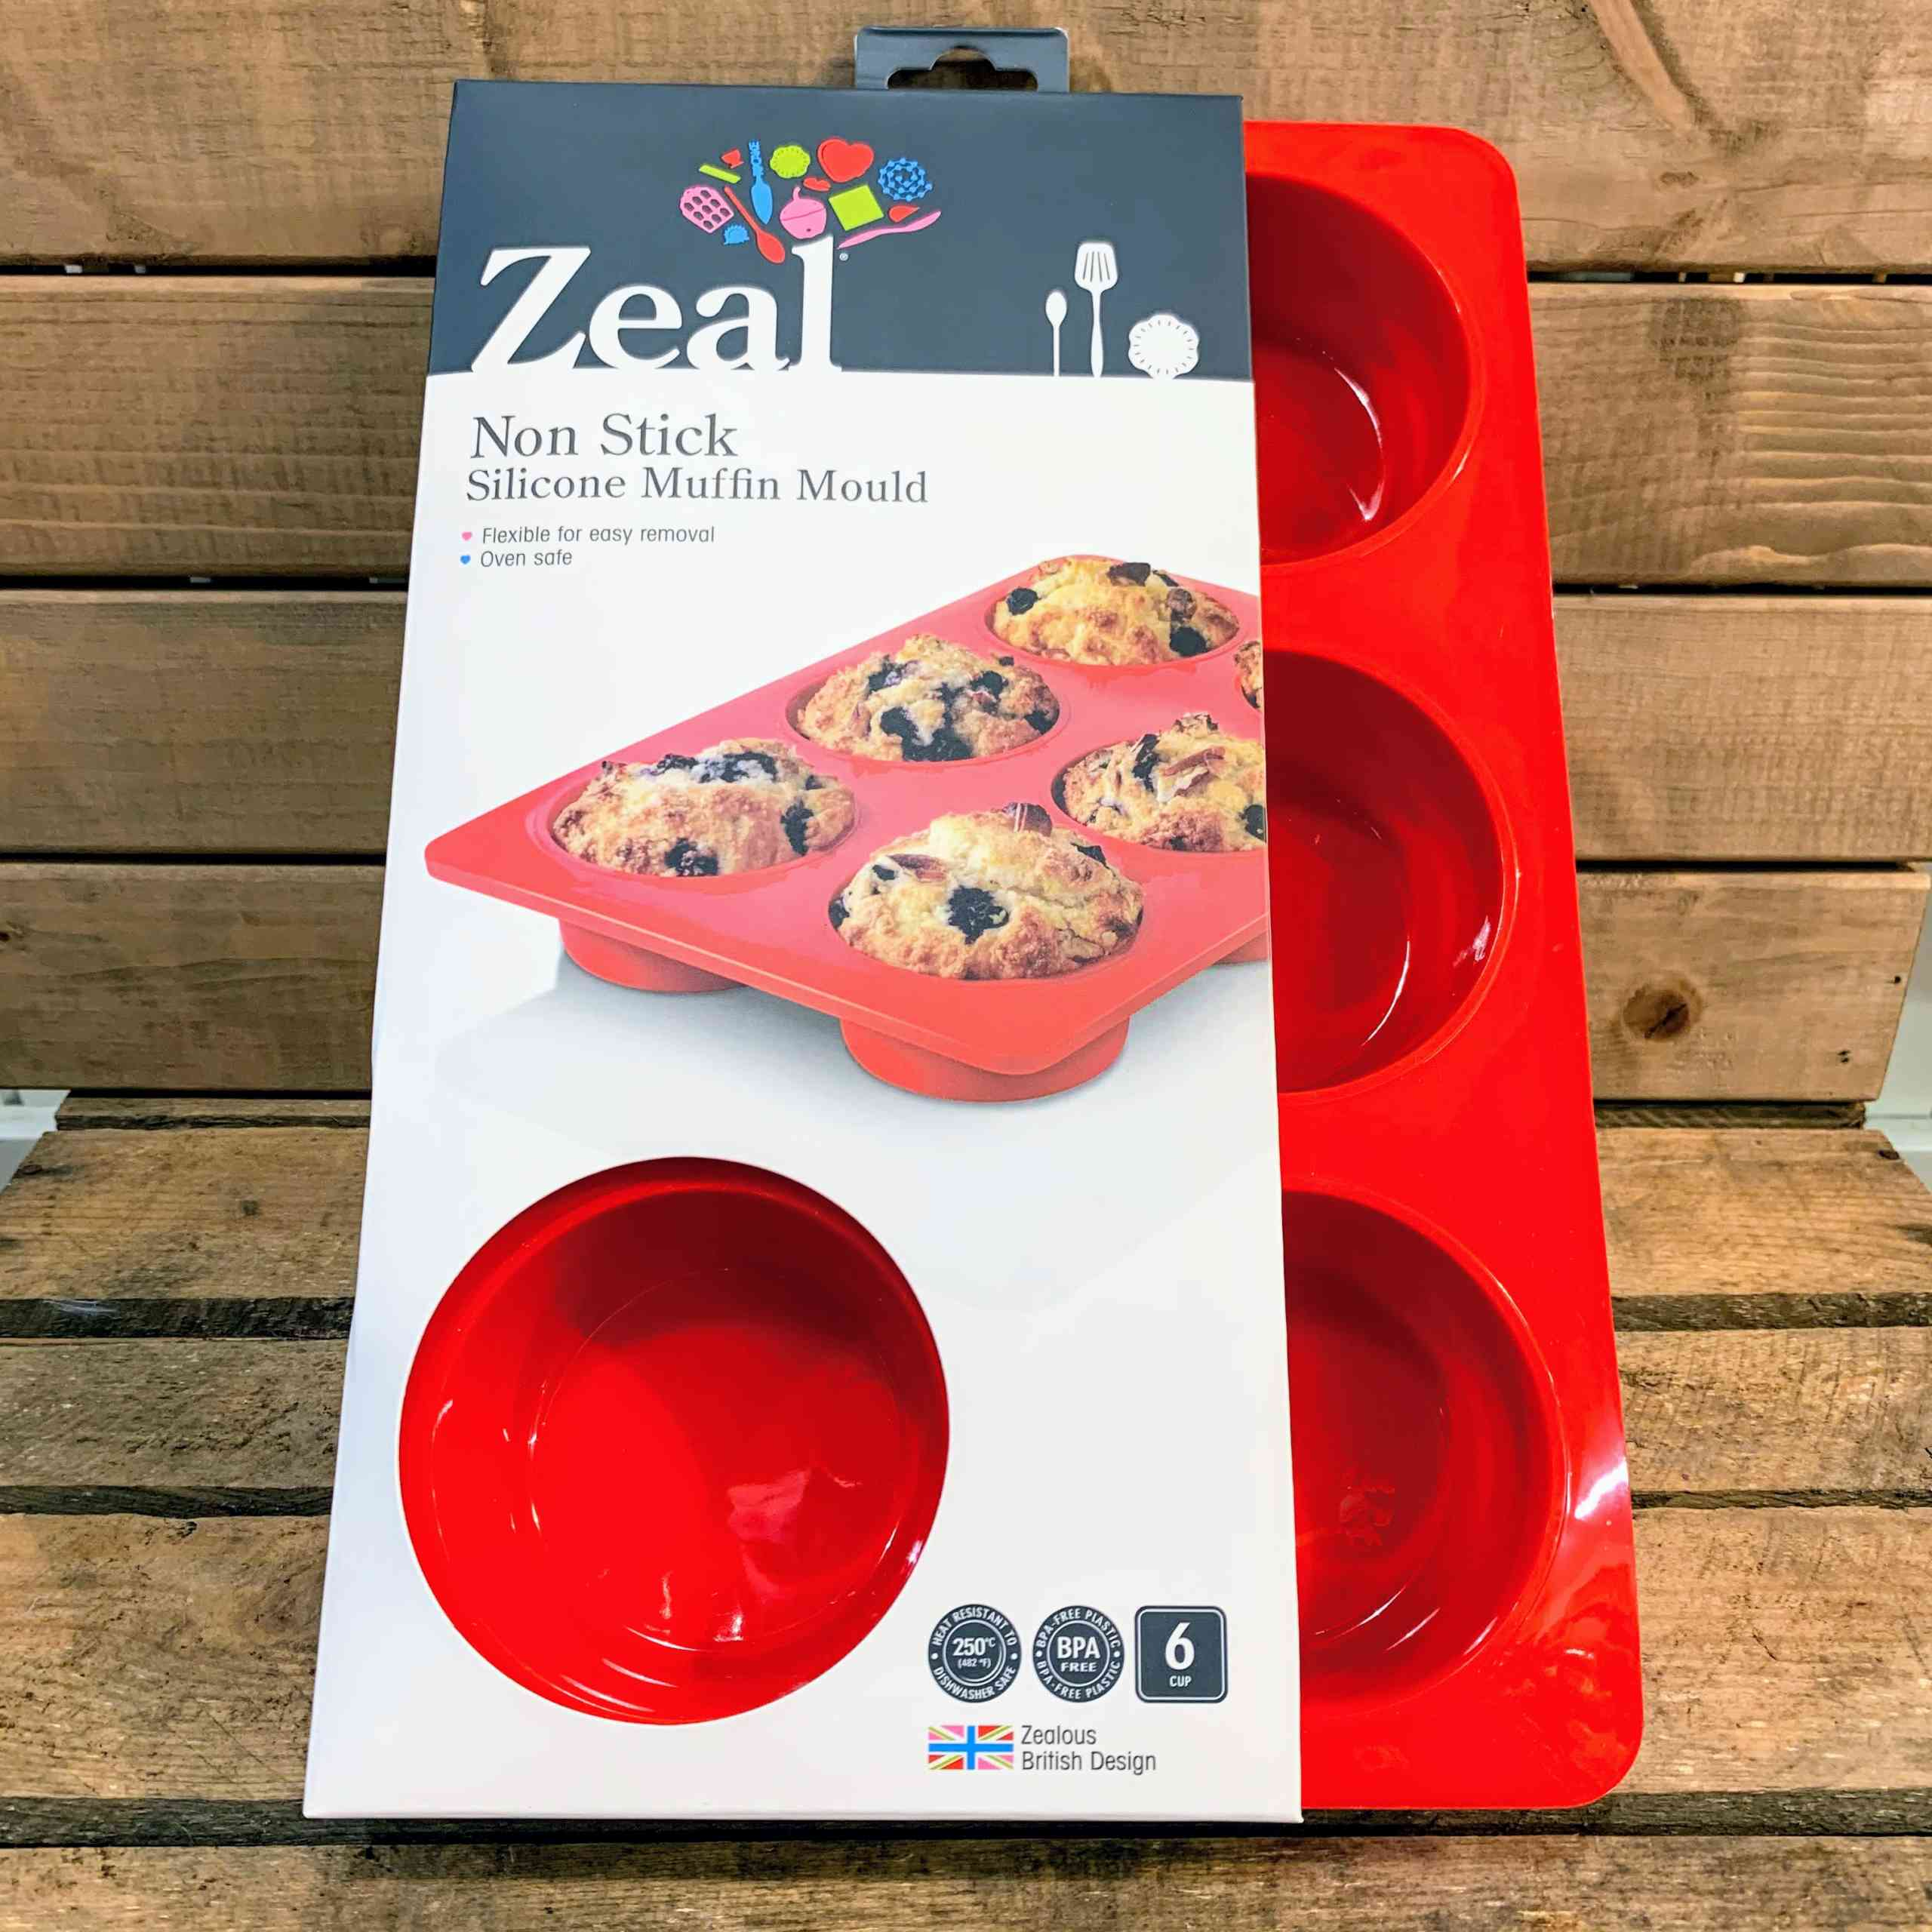 Zeal Non Stick Silicone Muffin Mould